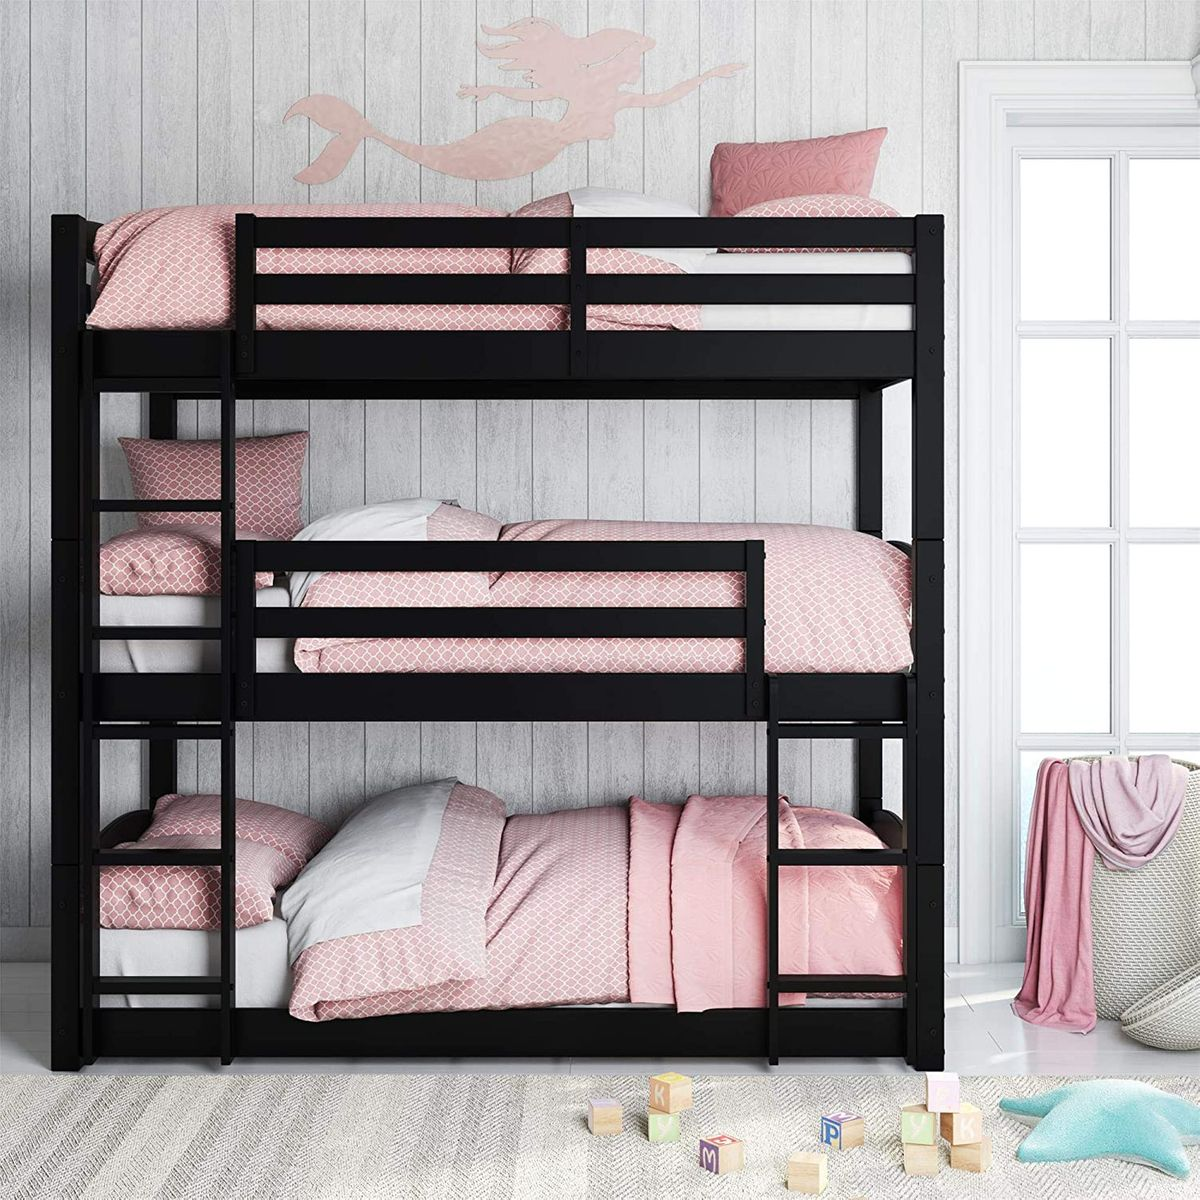 Picture of: 8 Best Bunk Beds 2020 The Strategist New York Magazine